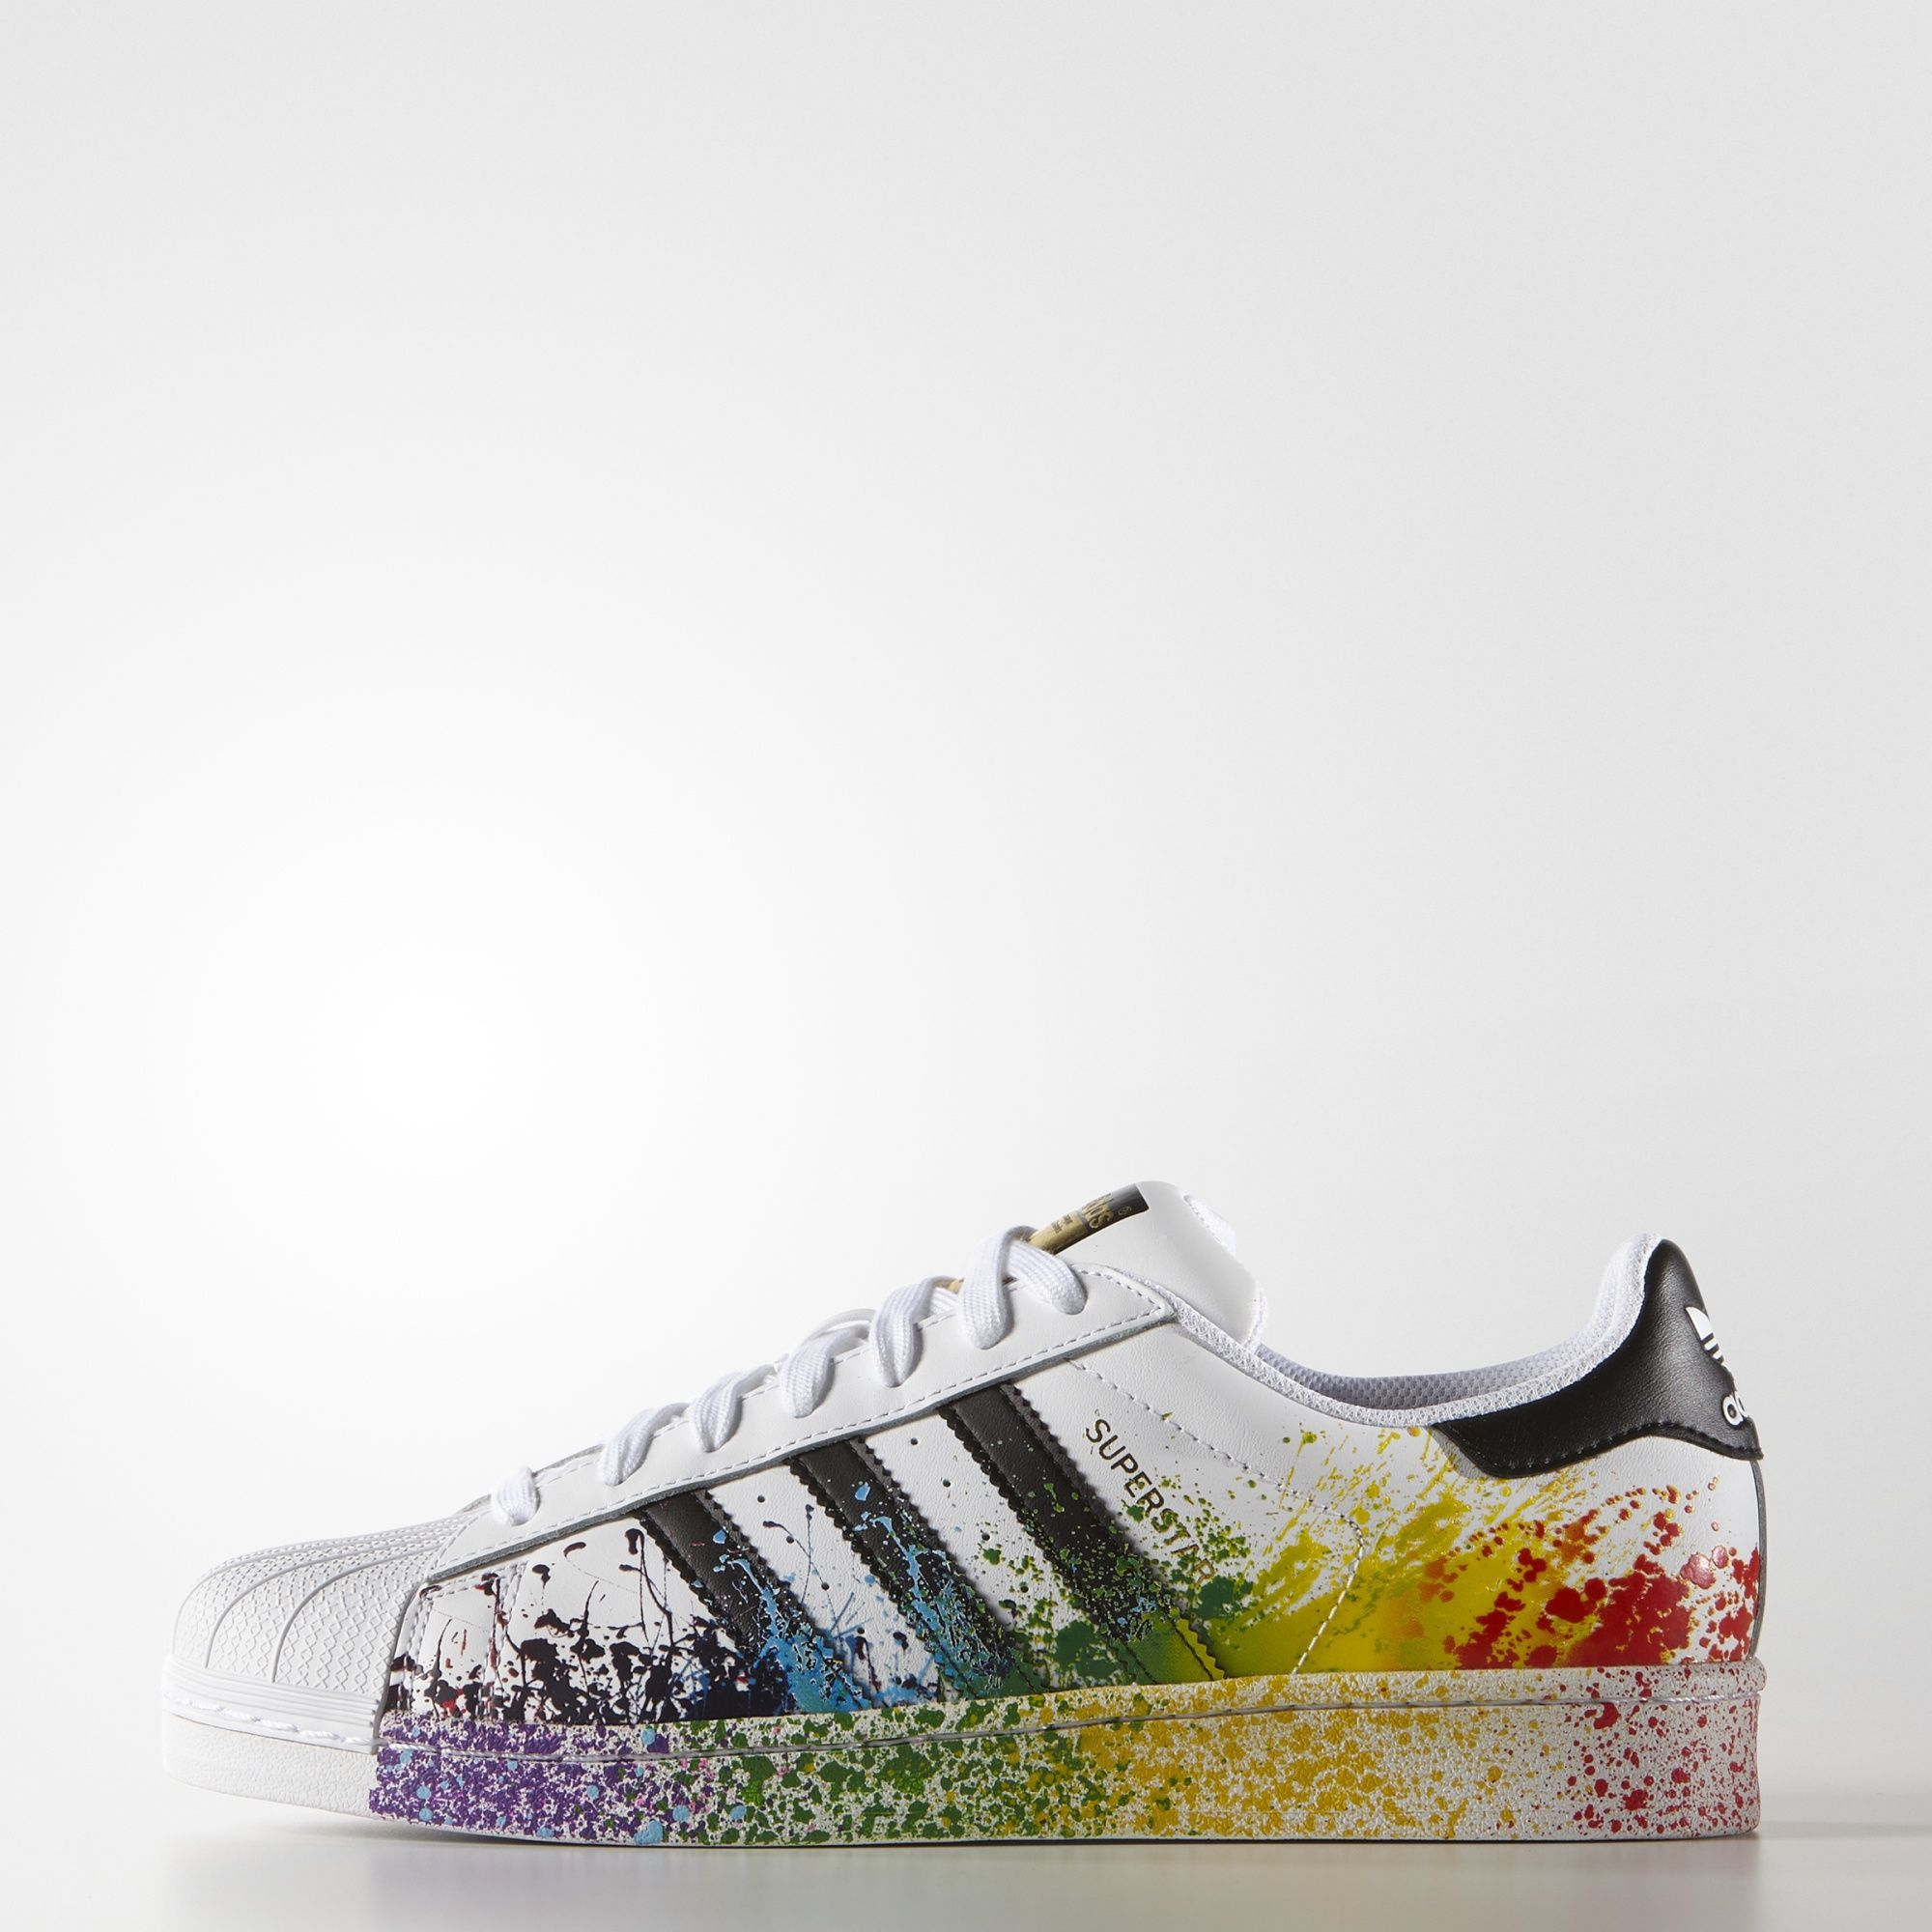 These men's adidas Superstar shoes proudly display the rainbow with an  eye-catching splatter print on the midsole and upper.